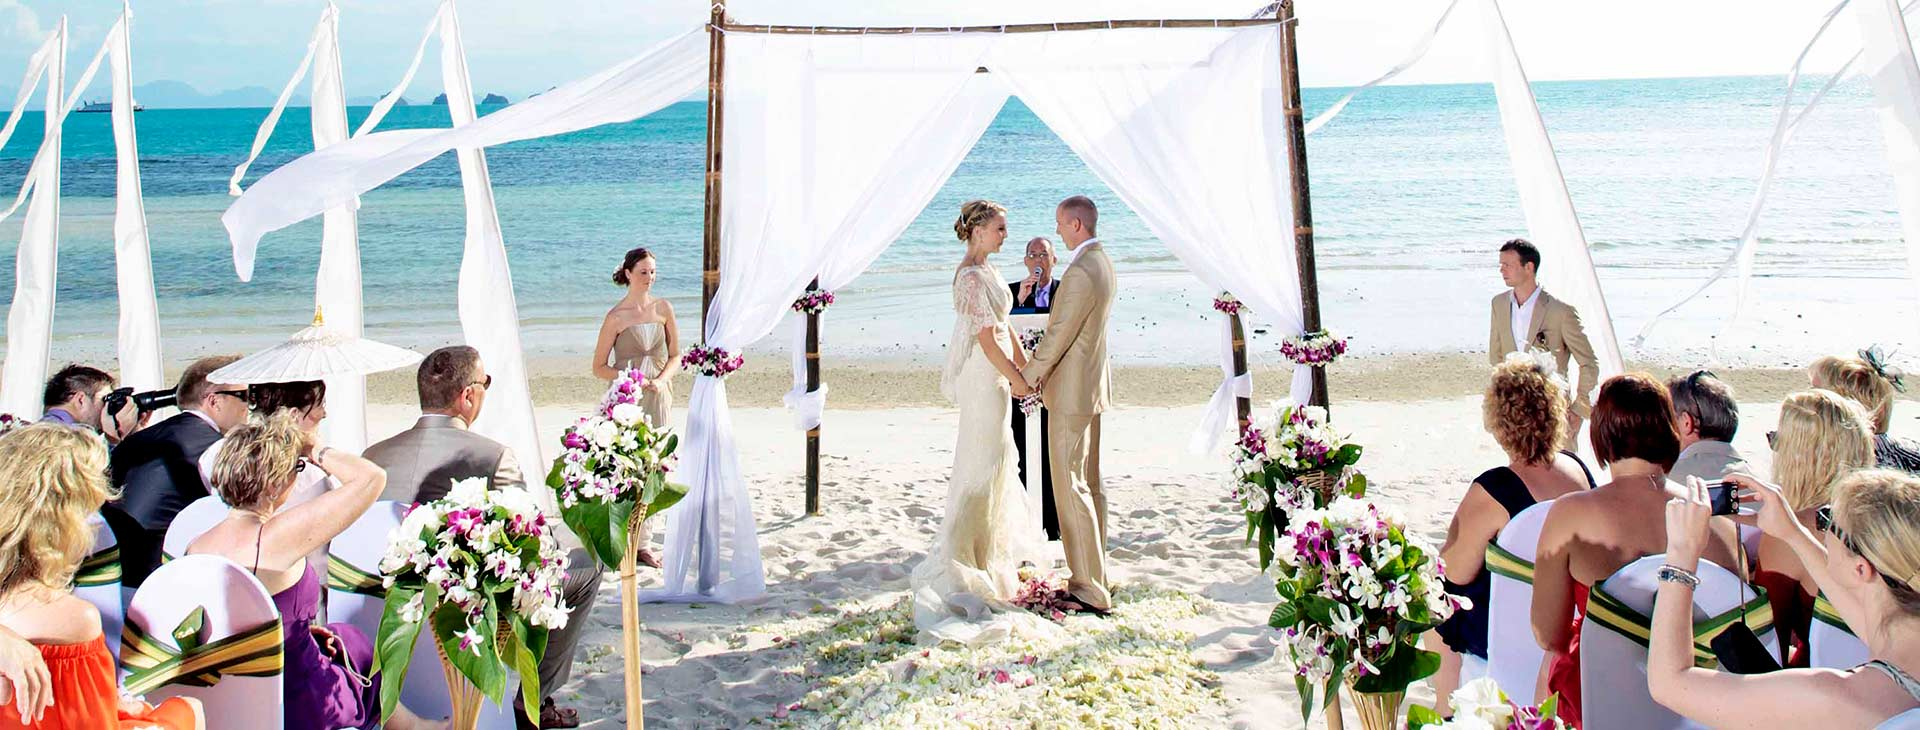 the signature weddings holiday villa weddings in thailand